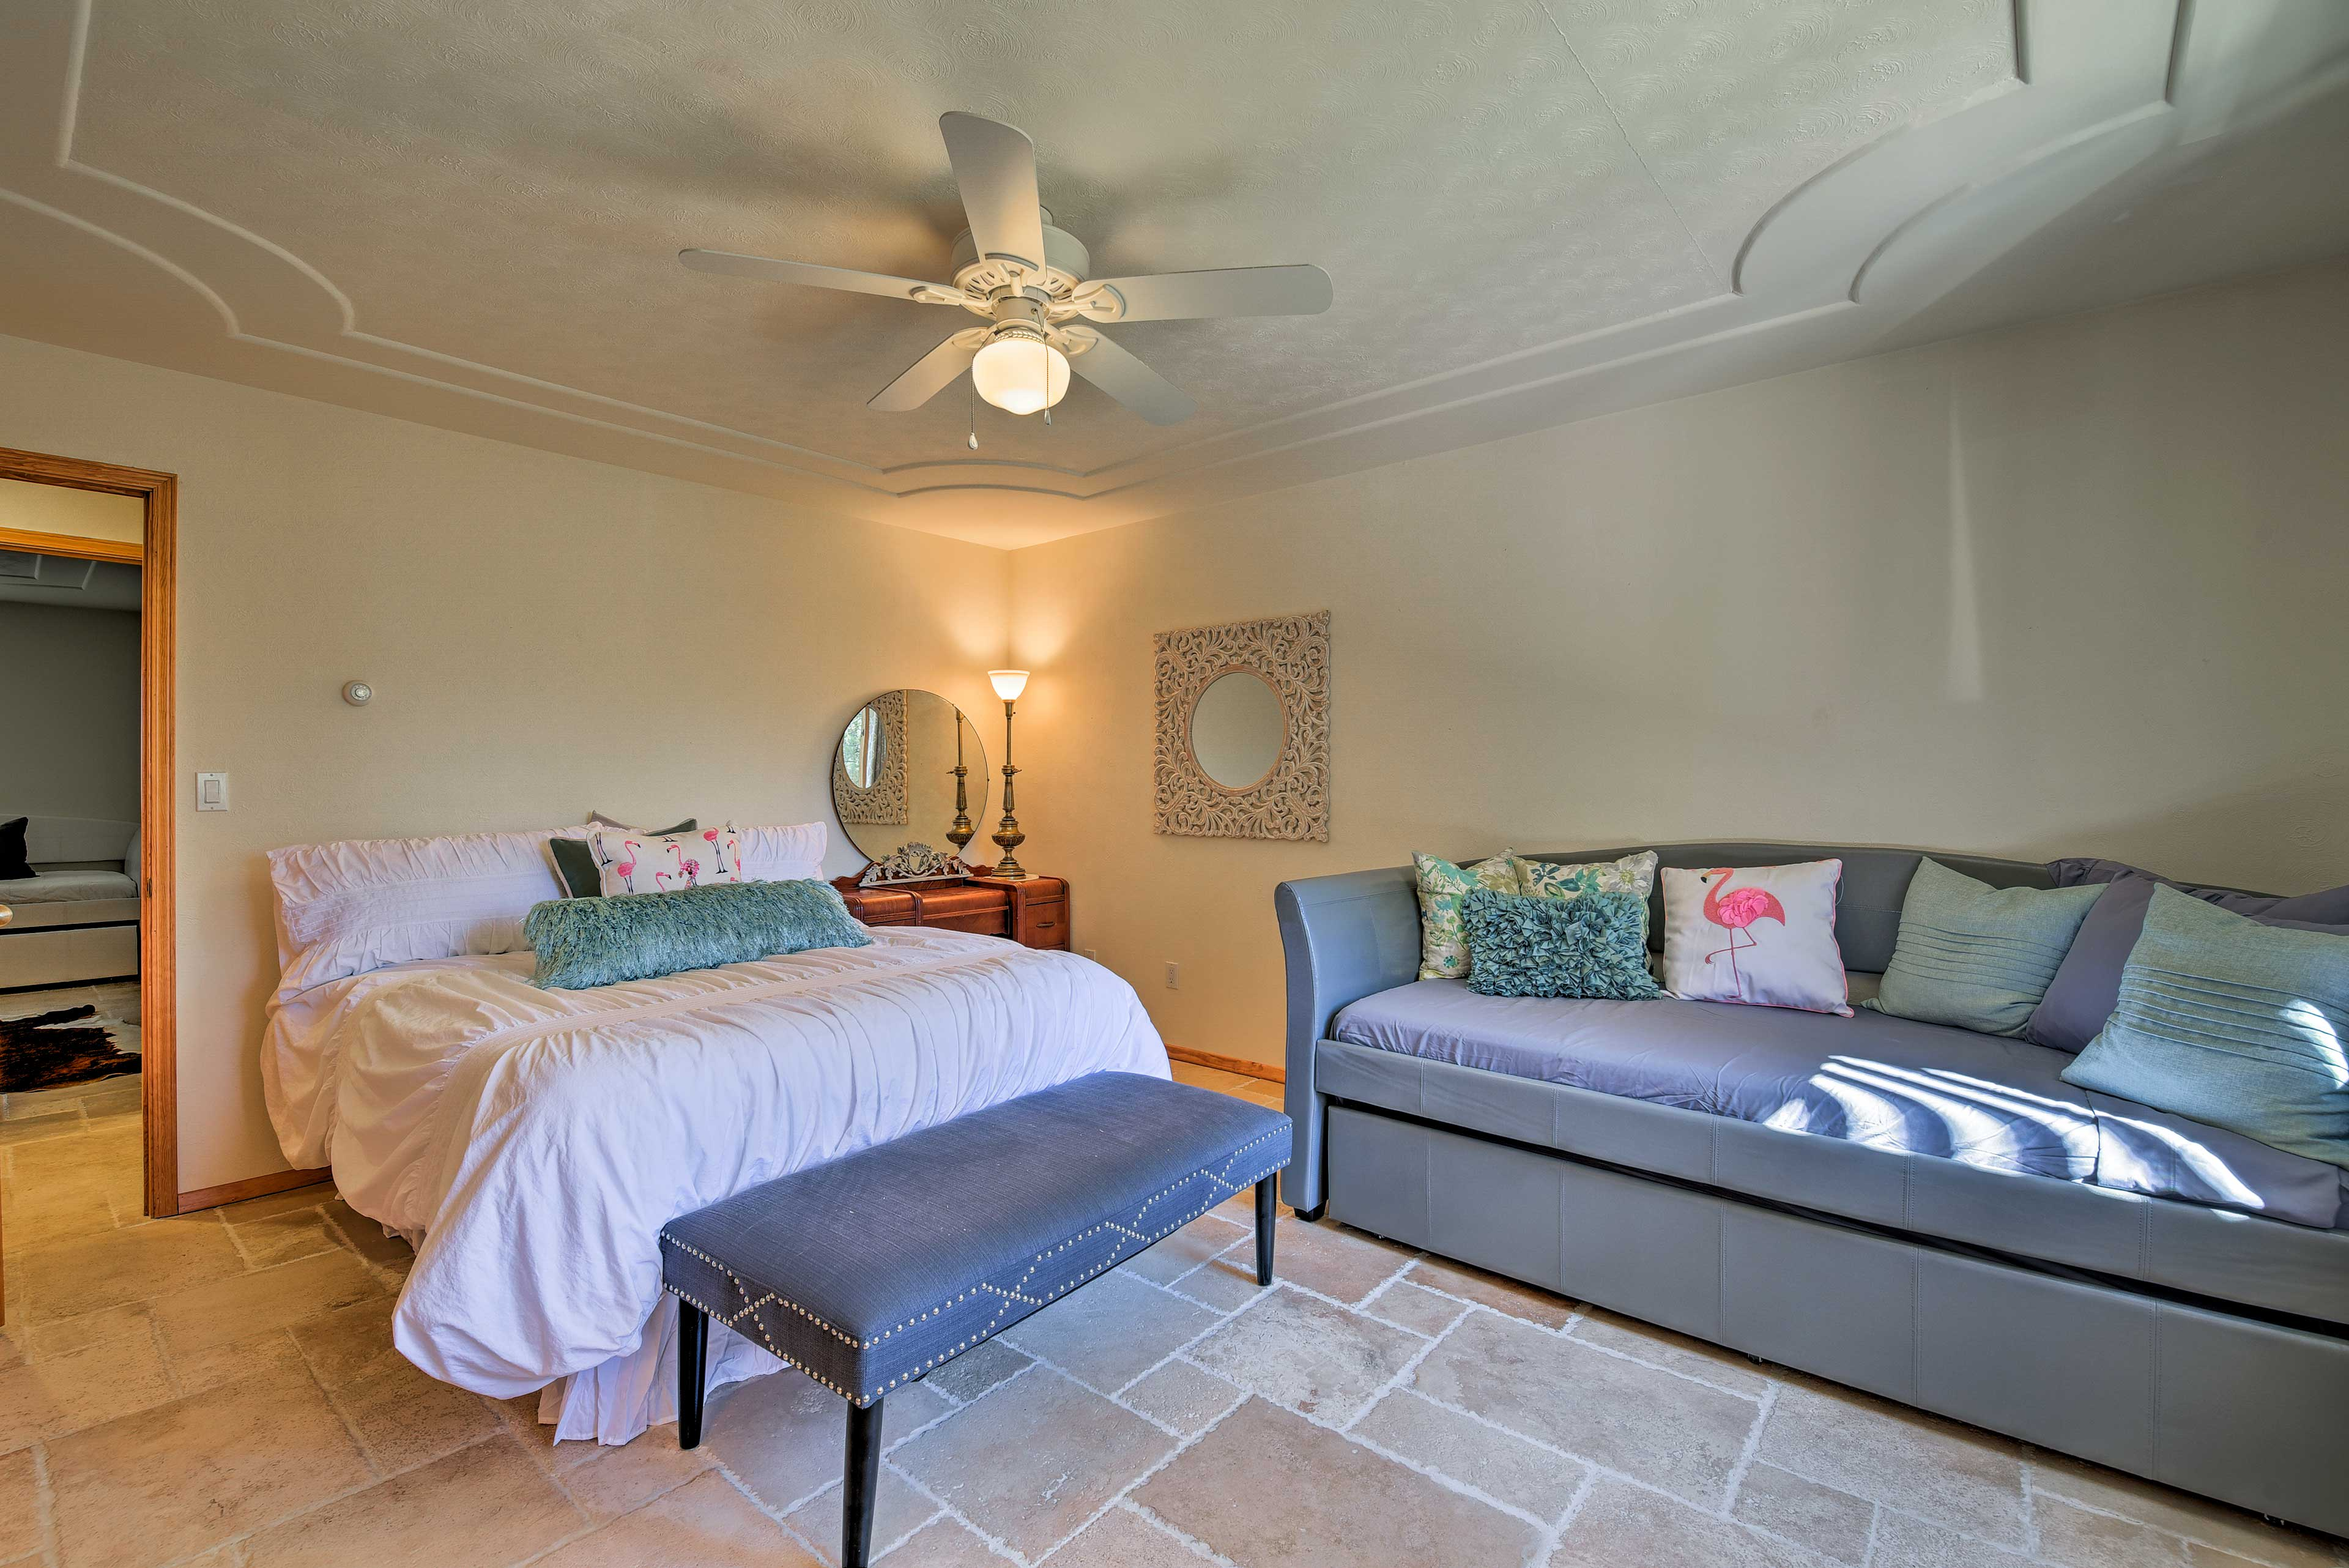 This third bedroom features a queen bed and chic modern decor.